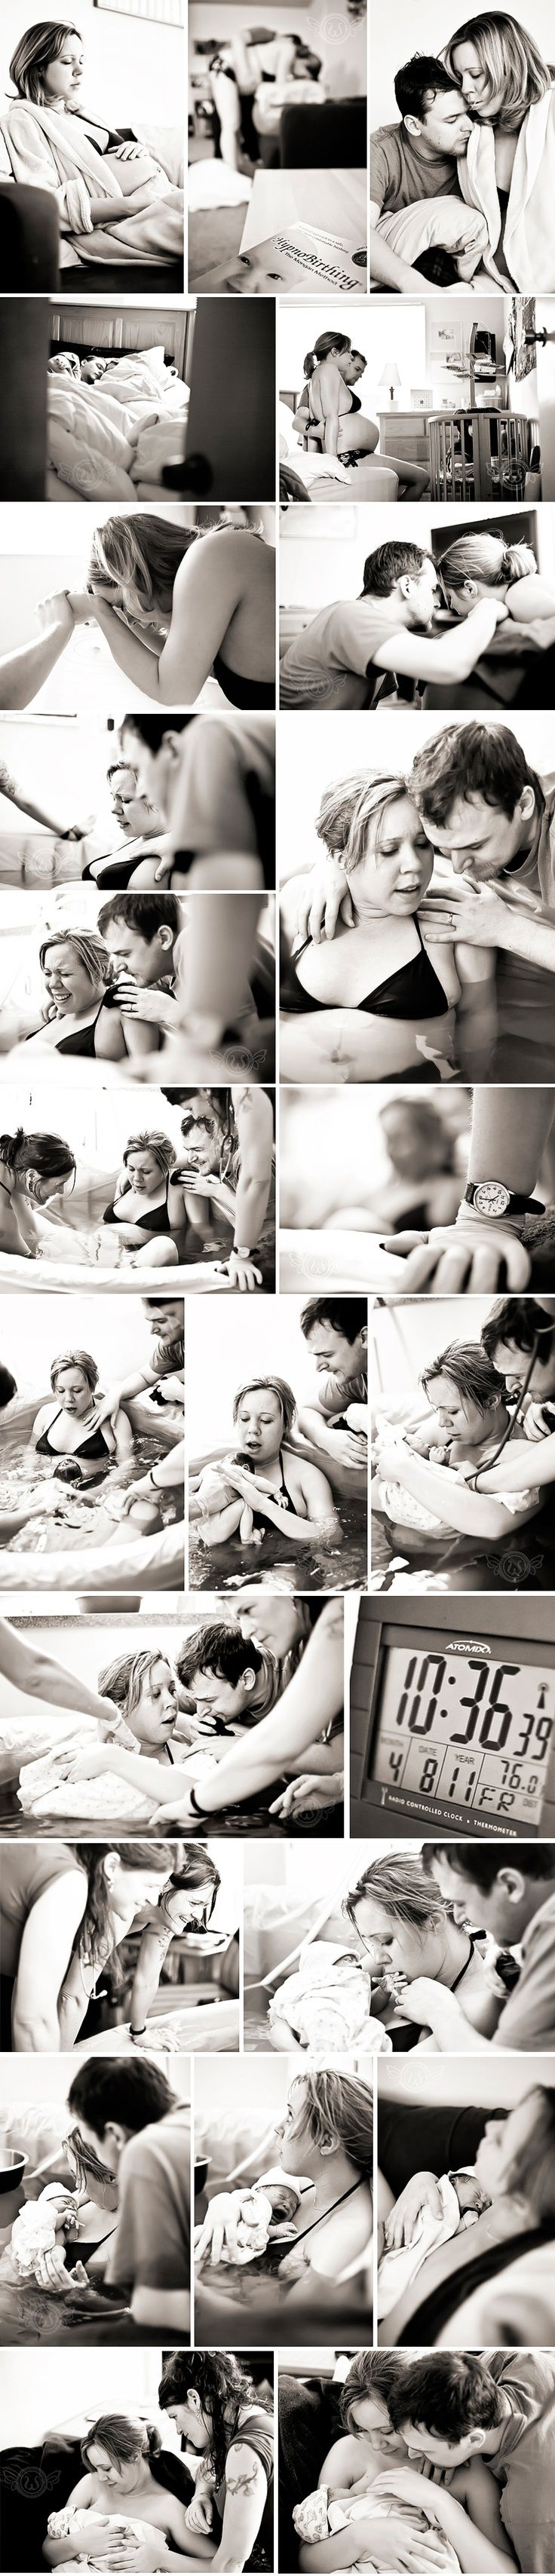 Mike won't allow a home birth, but the water birth is a definite possibility!  Lovely home birth photos